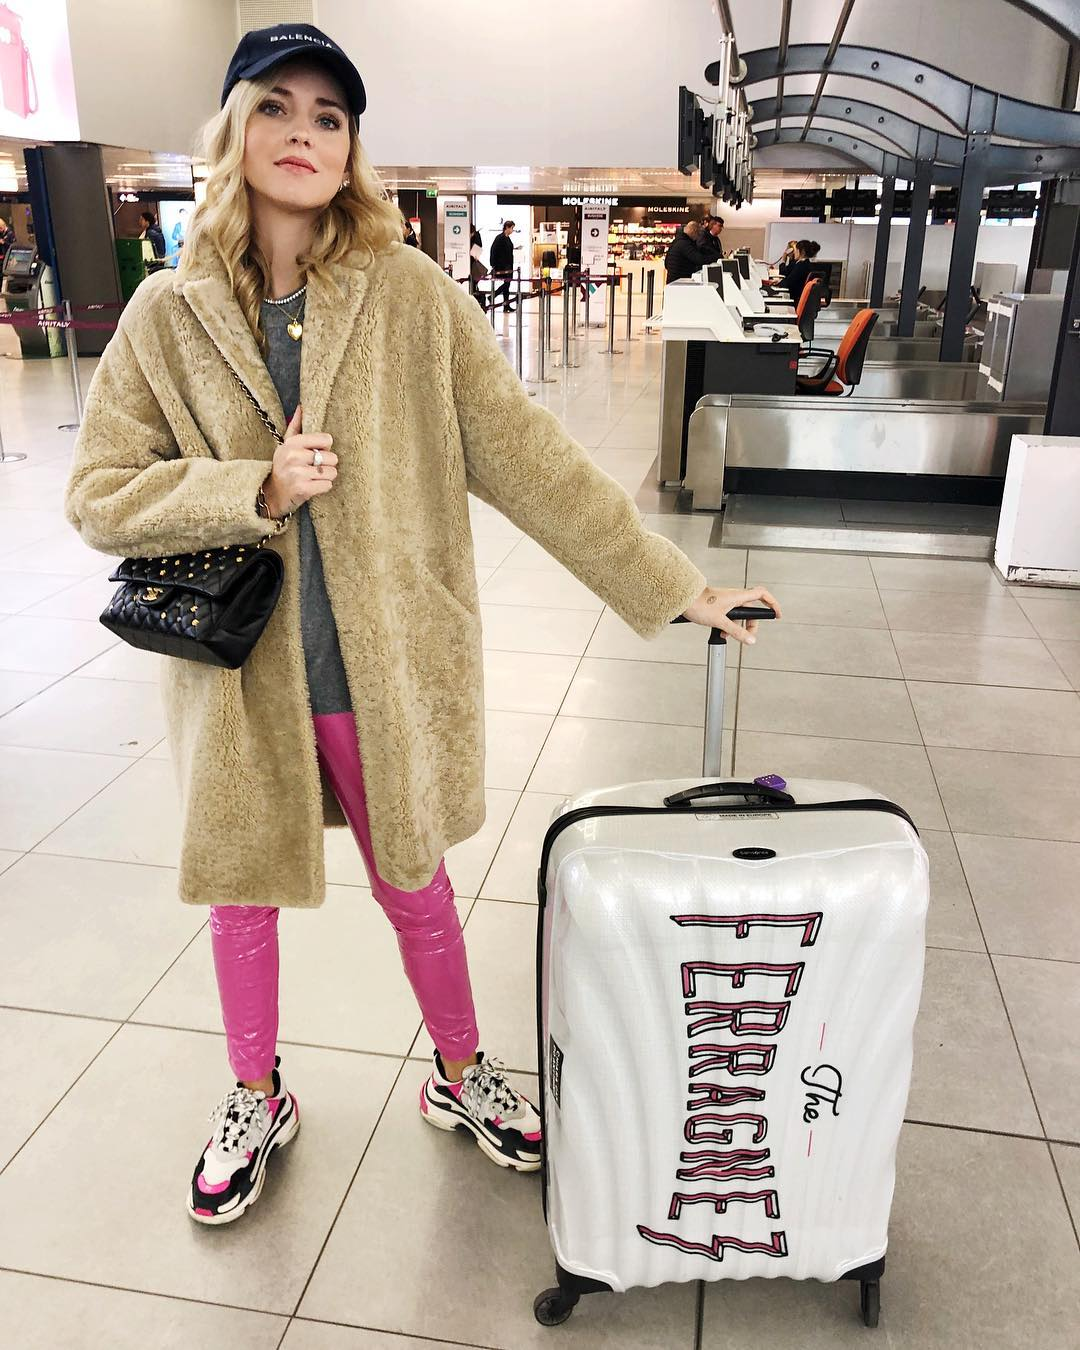 Airport Outfit Idea: Chiara Ferragni In Teddy Bear Coat And Pink Skinnies 2020